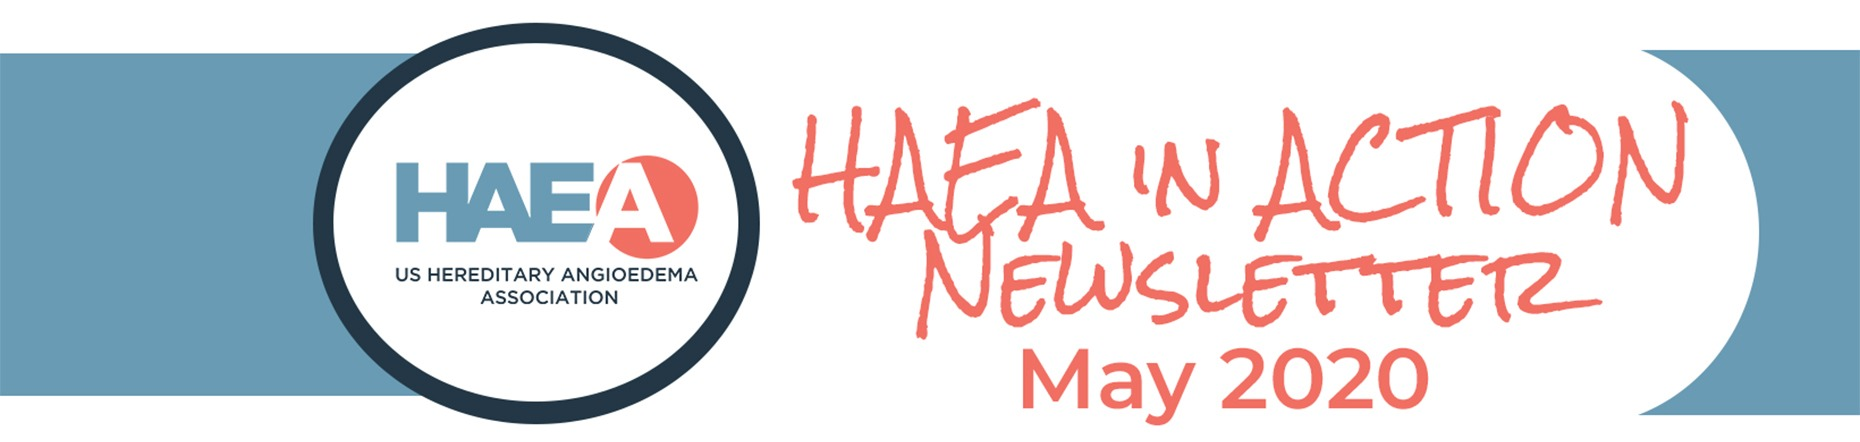 HAEA in Action May 2020 Newsletter